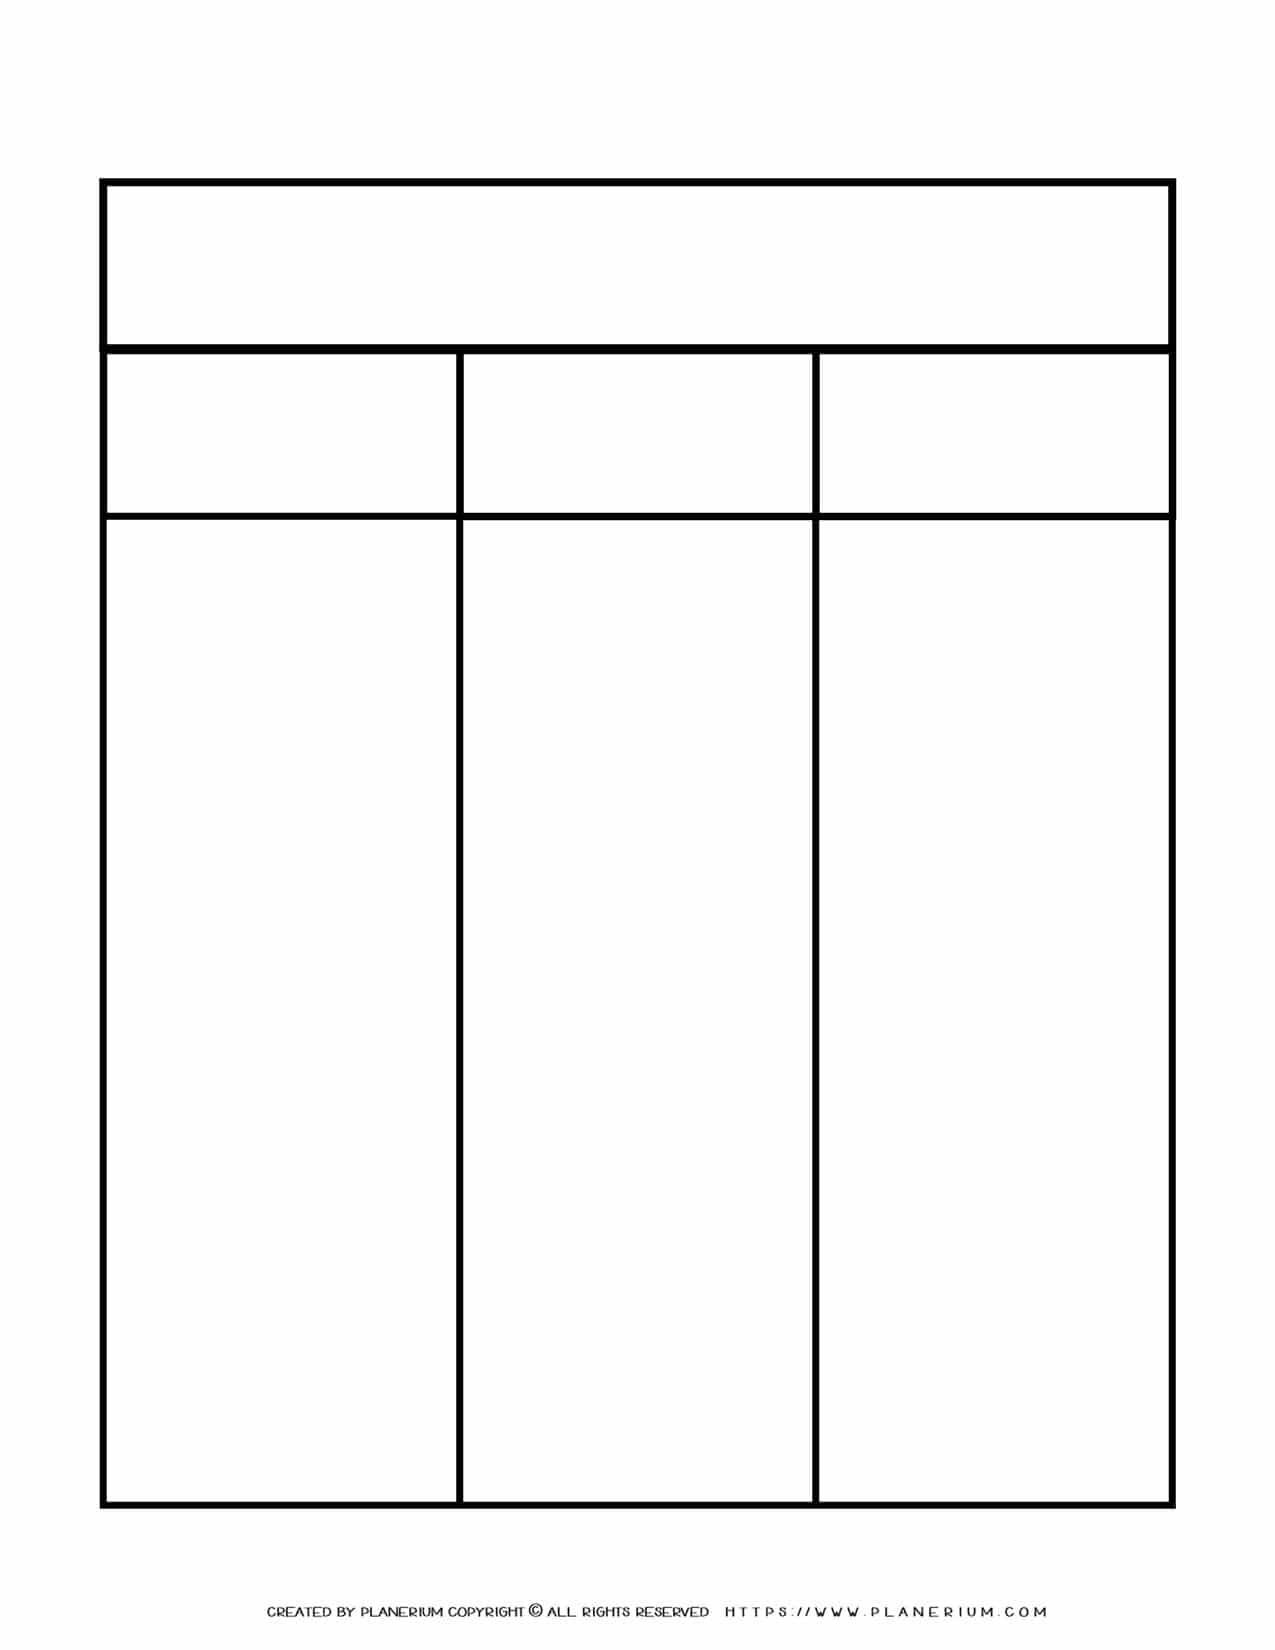 Graphic Organizer Templates - Chart with Three Columns and Two Rows | Planerium